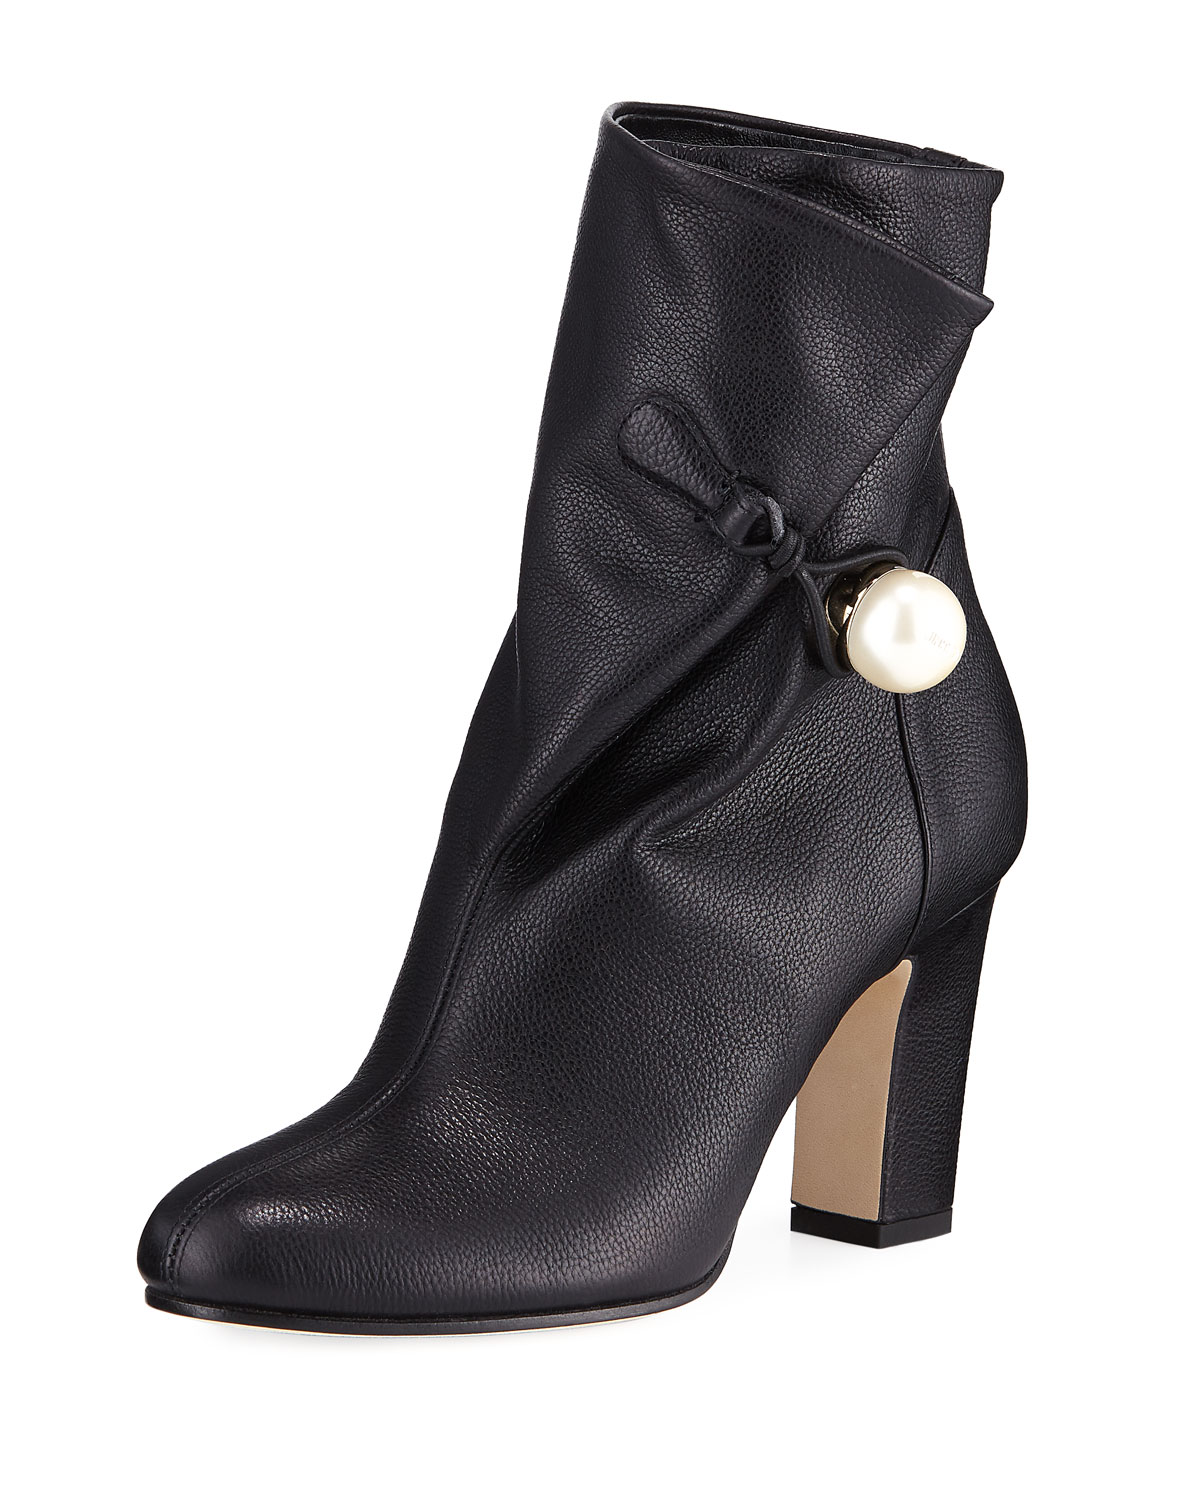 7189f30de201 Jimmy Choo Bethanie 85mm Leather Booties